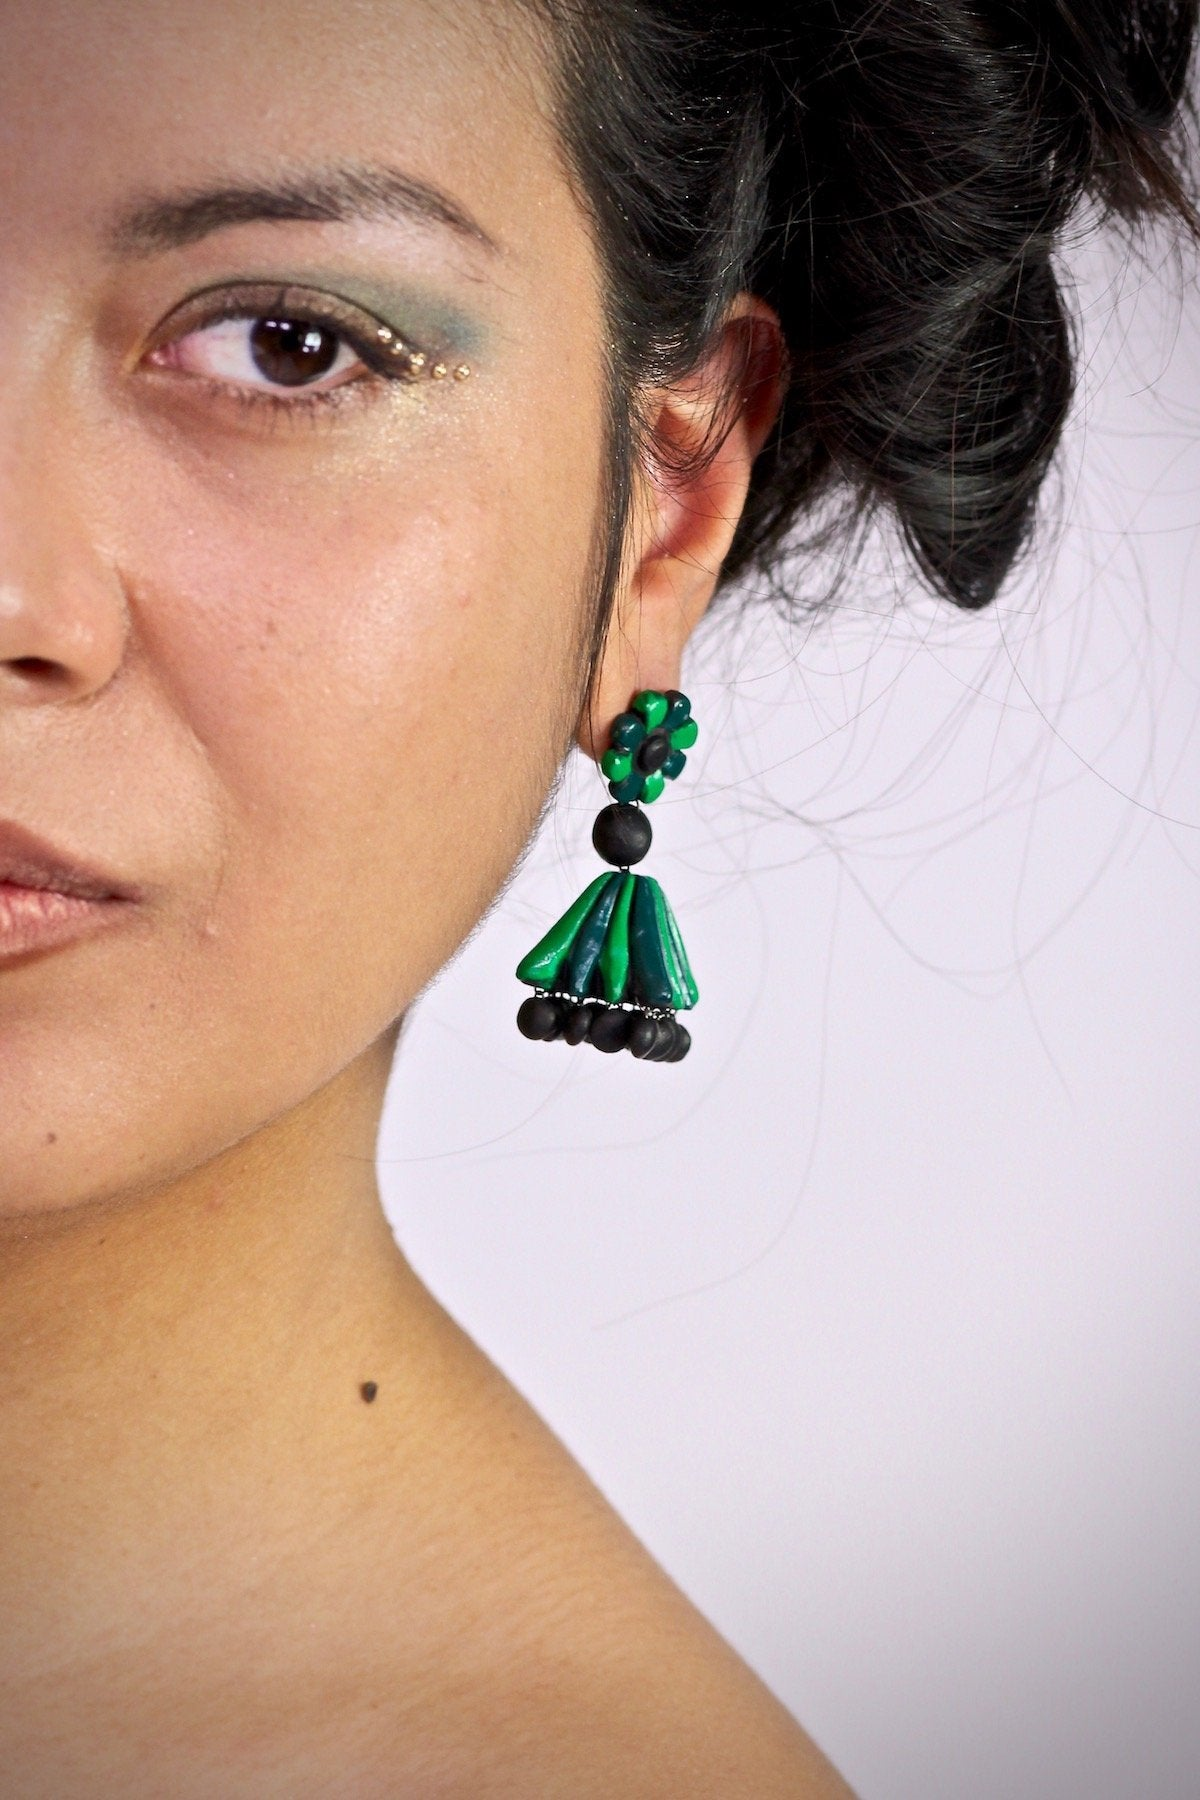 BI Green Flower - Boucles d'oreilles - Azaadi, la mode responsable accessible